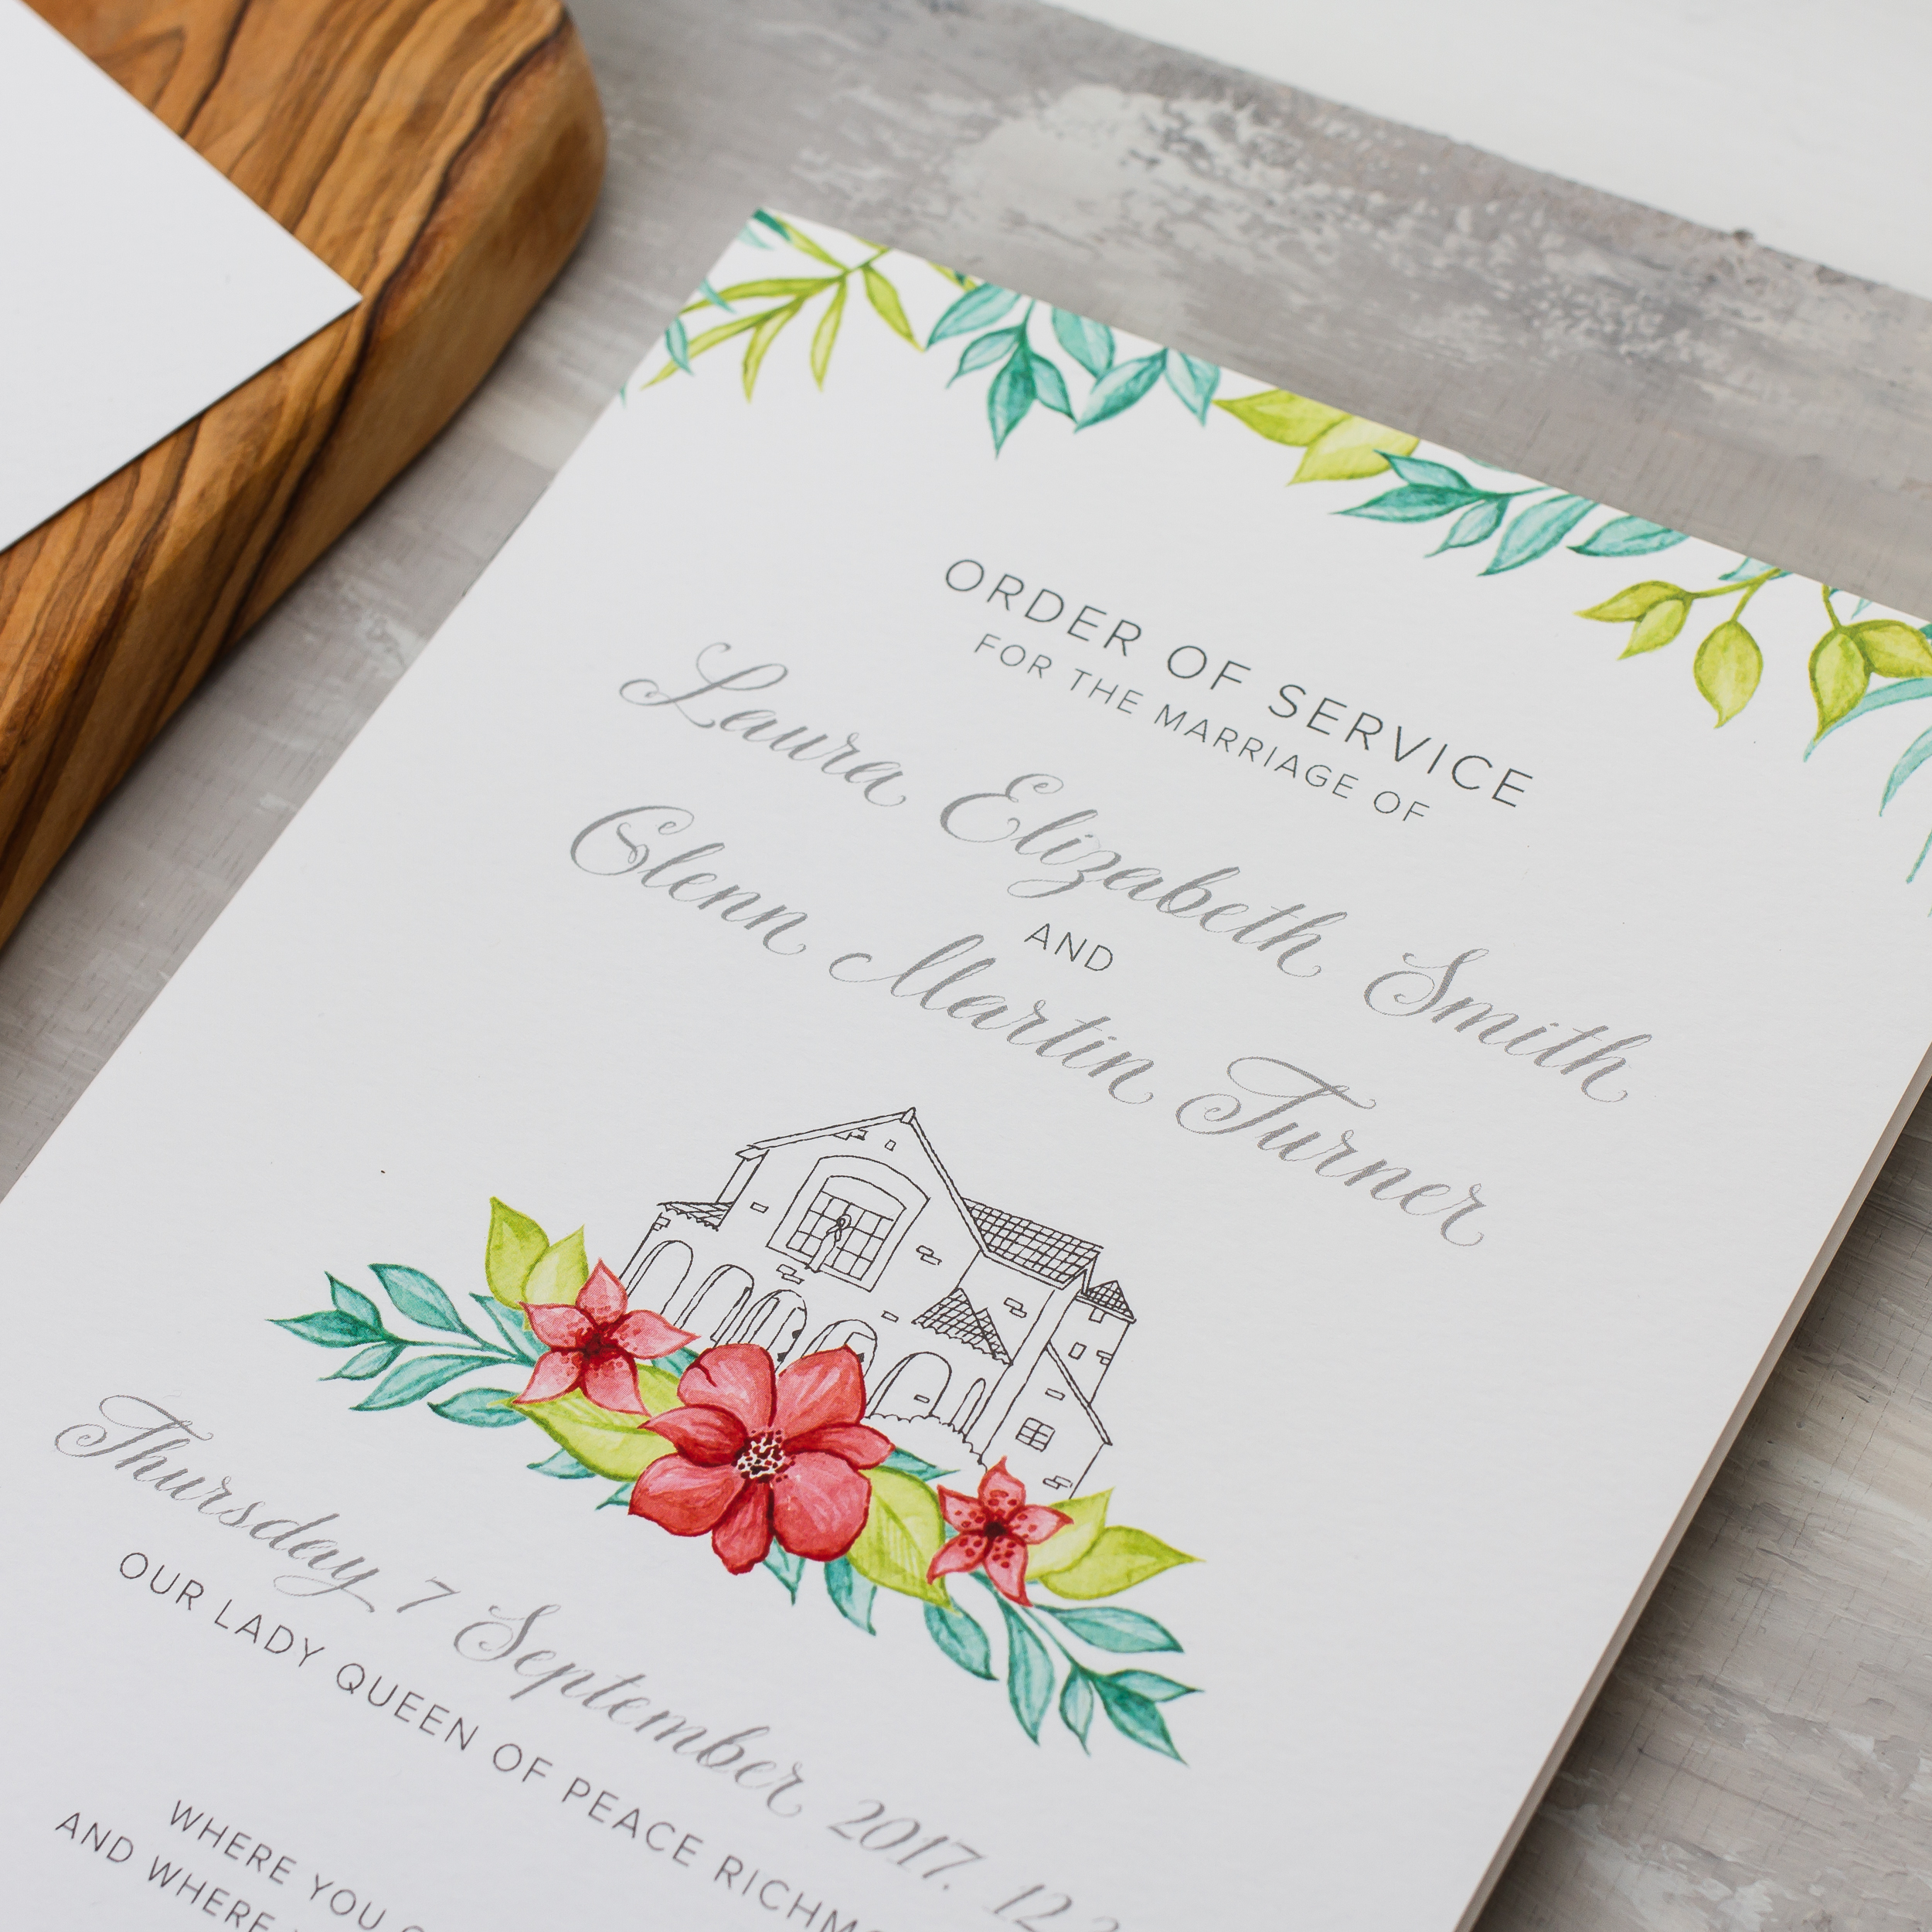 Laura & Glenn Custom Watercolour Design Woodland Deer, Flora and Fauna, Boho Wedding Stationery Design - Pingle Pie 6.jpg